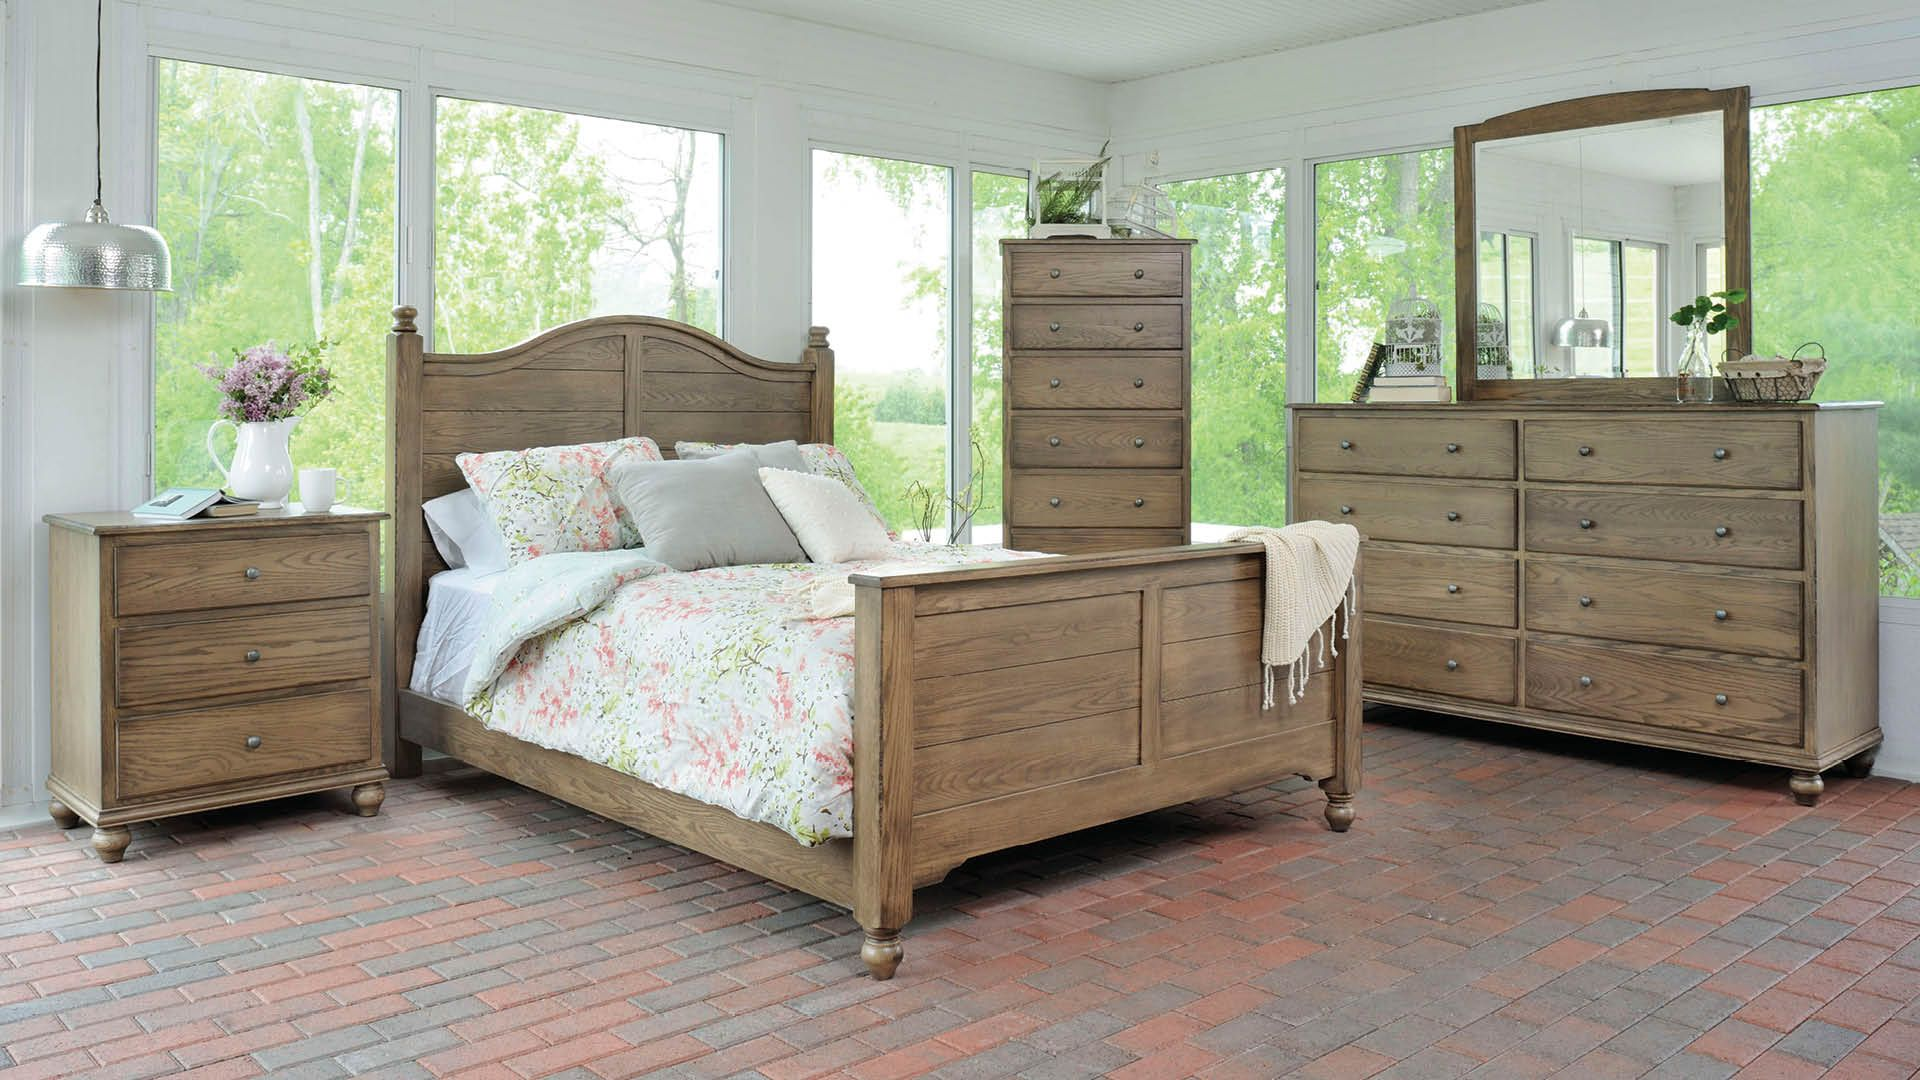 How Much Does It Cost To Ship A Bedroom Set / China Hotel ...